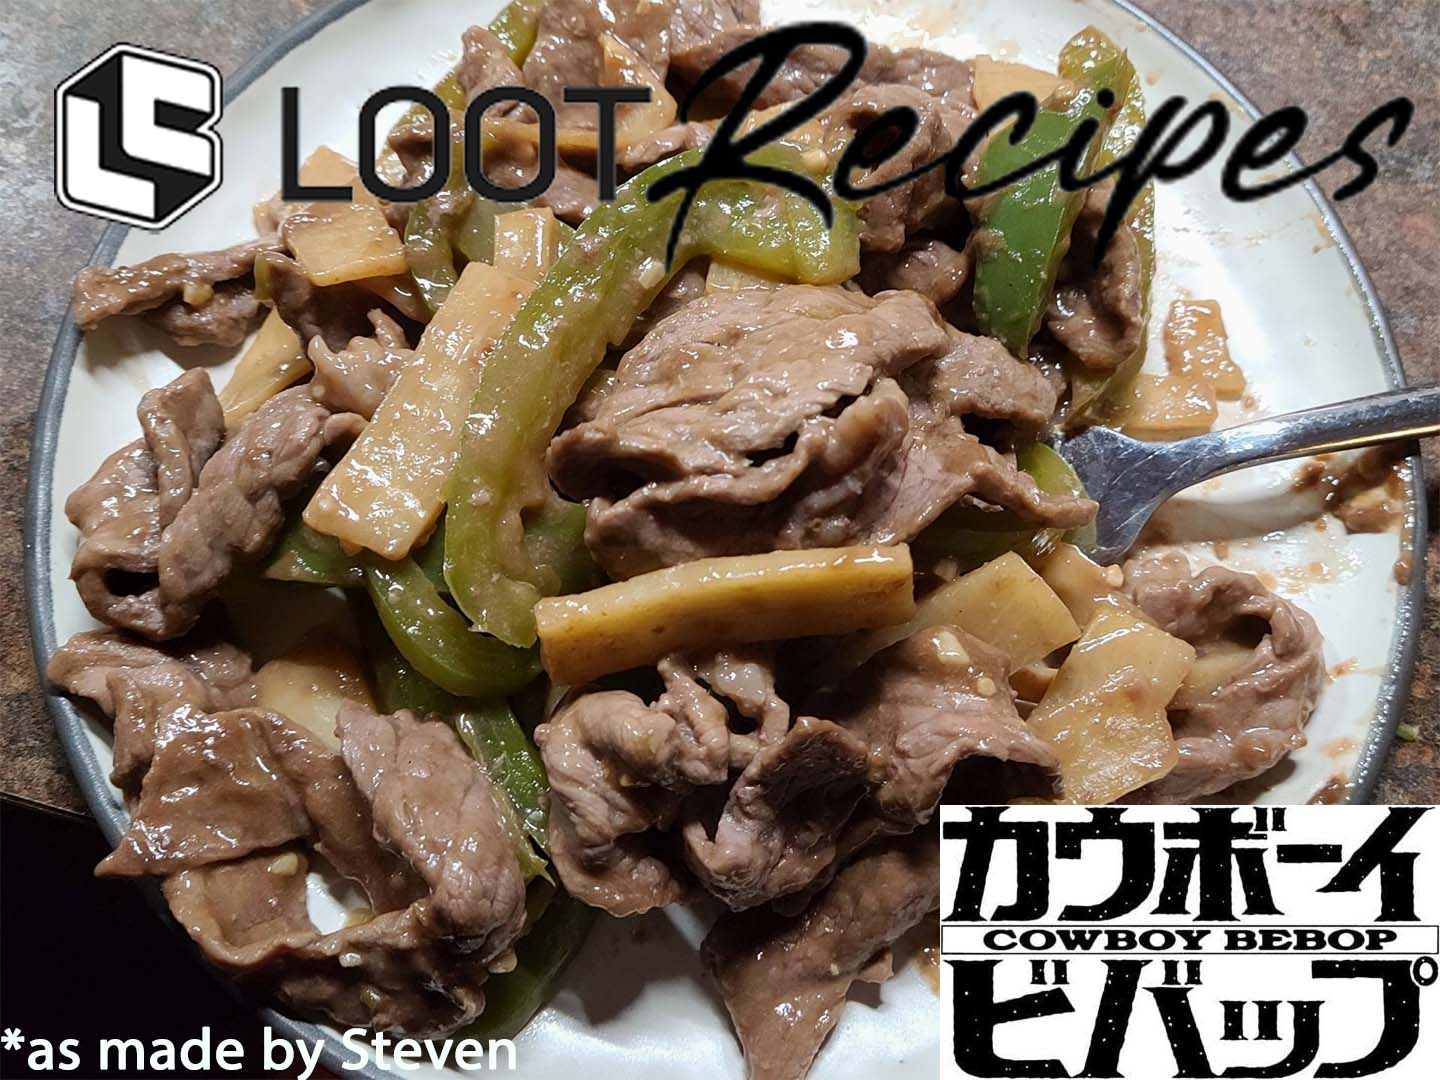 Looter Recipes: Bell Peppers & Beef from Cowboy Bebop